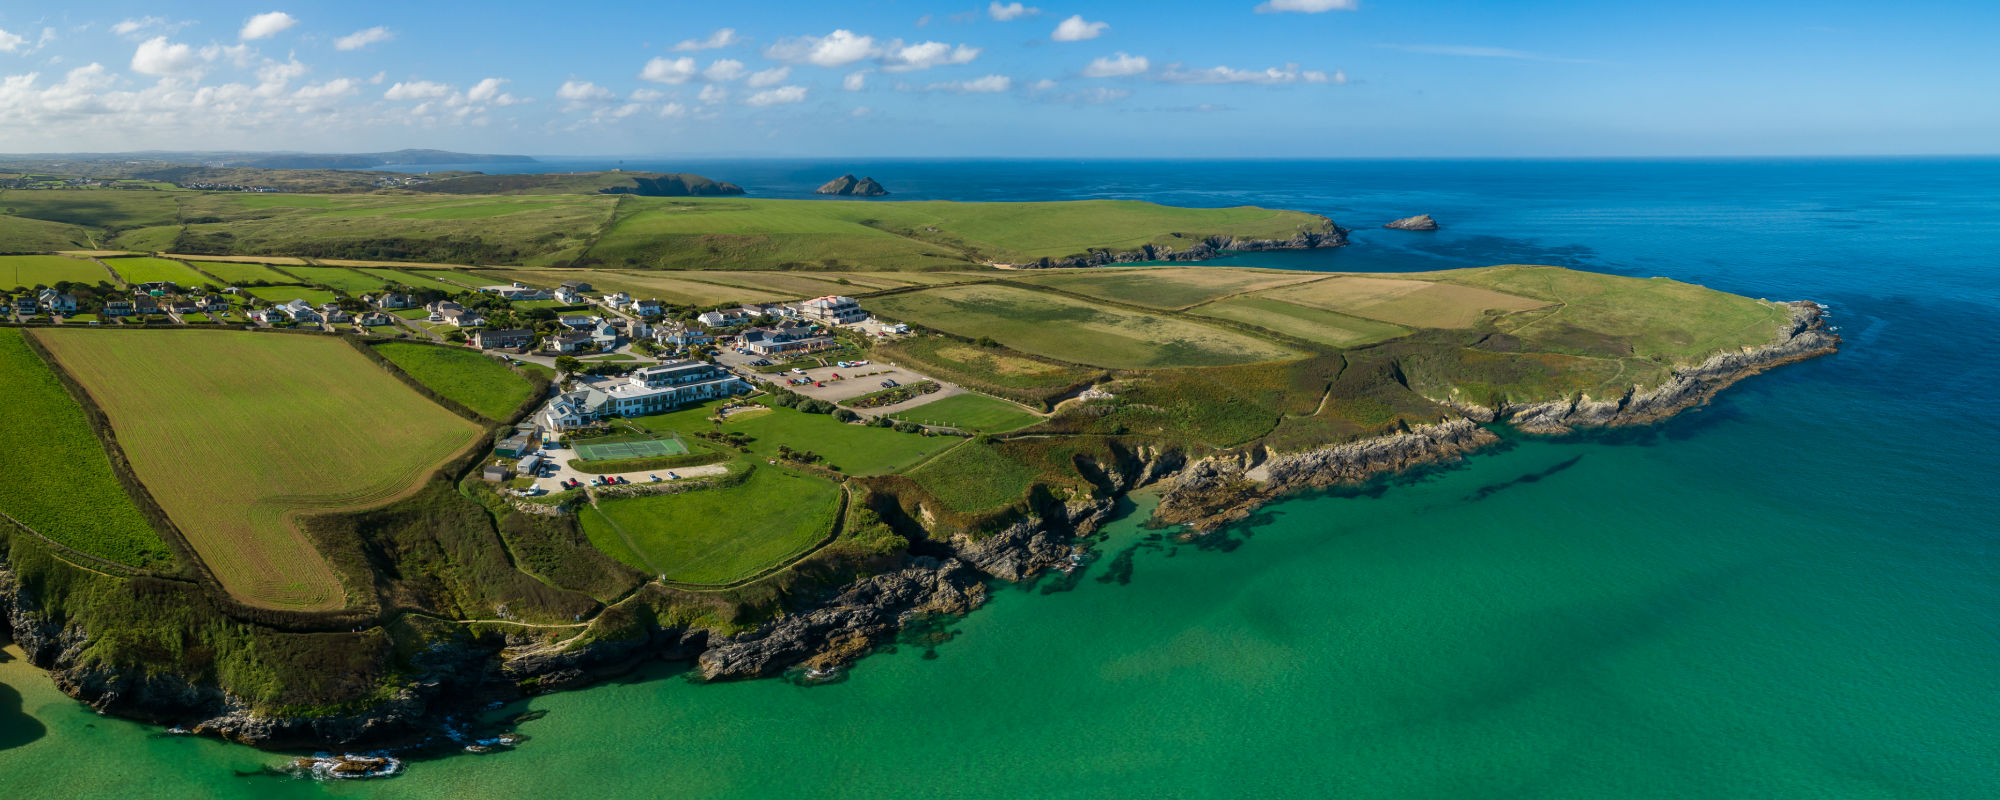 Aerial Cornwall 1 - Welcome to Crantock Bay